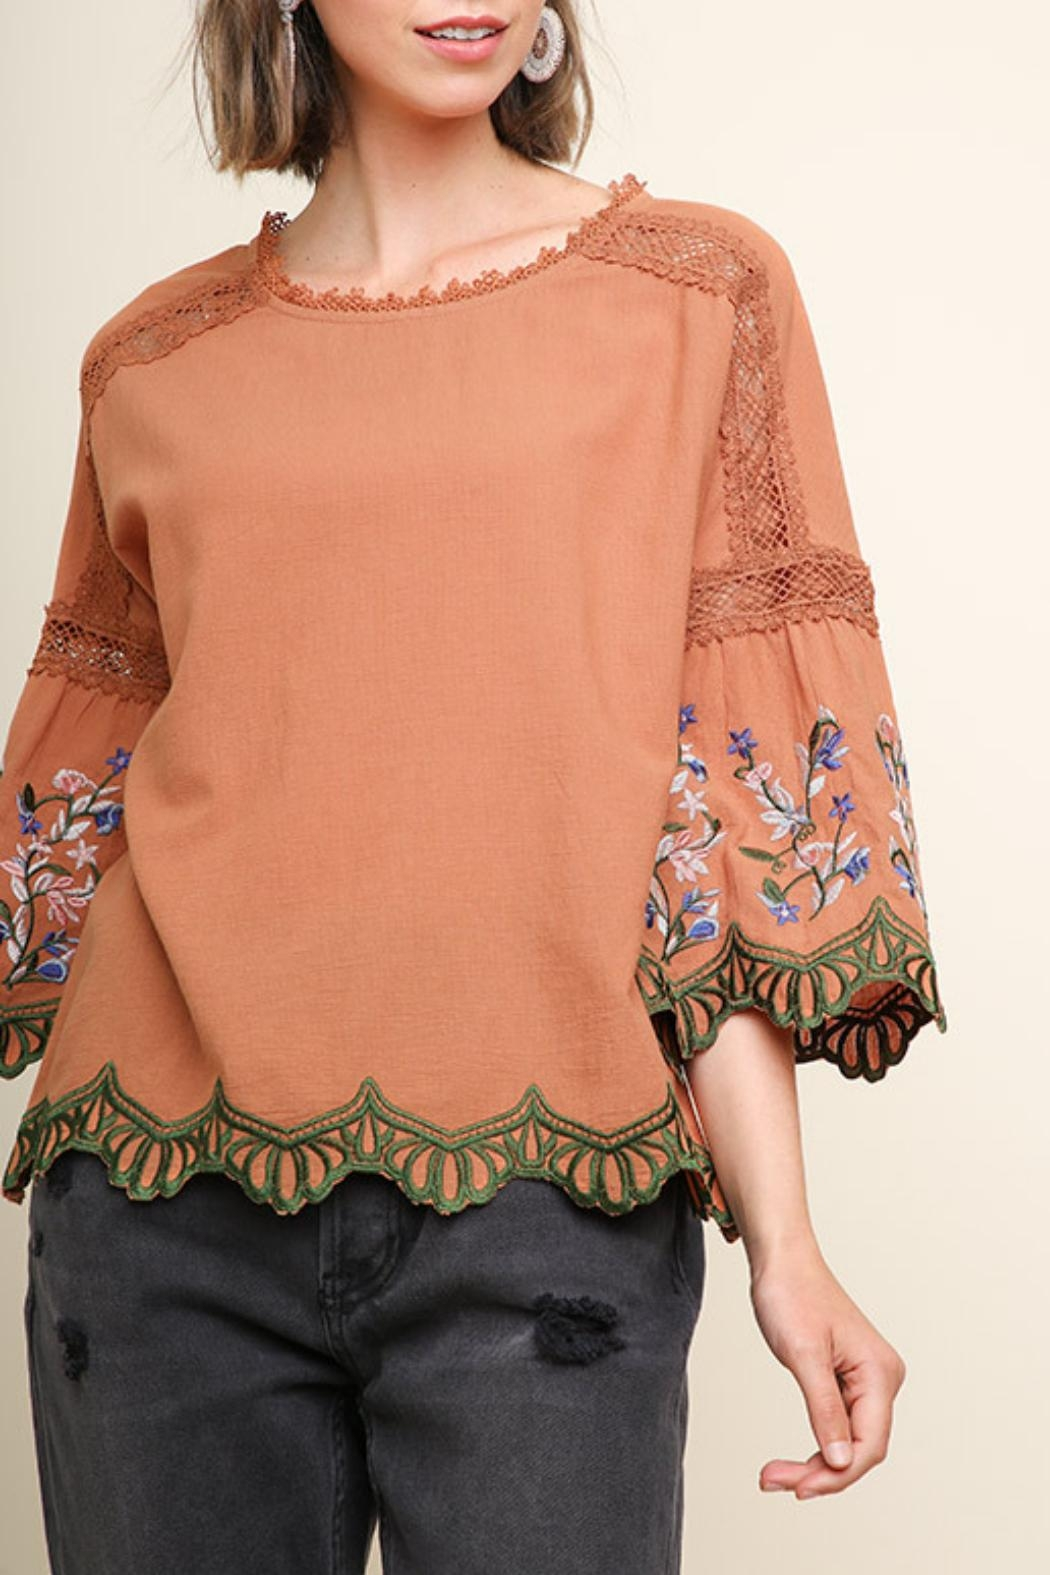 Umgee USA Clay Embroidered Blouse - Main Image